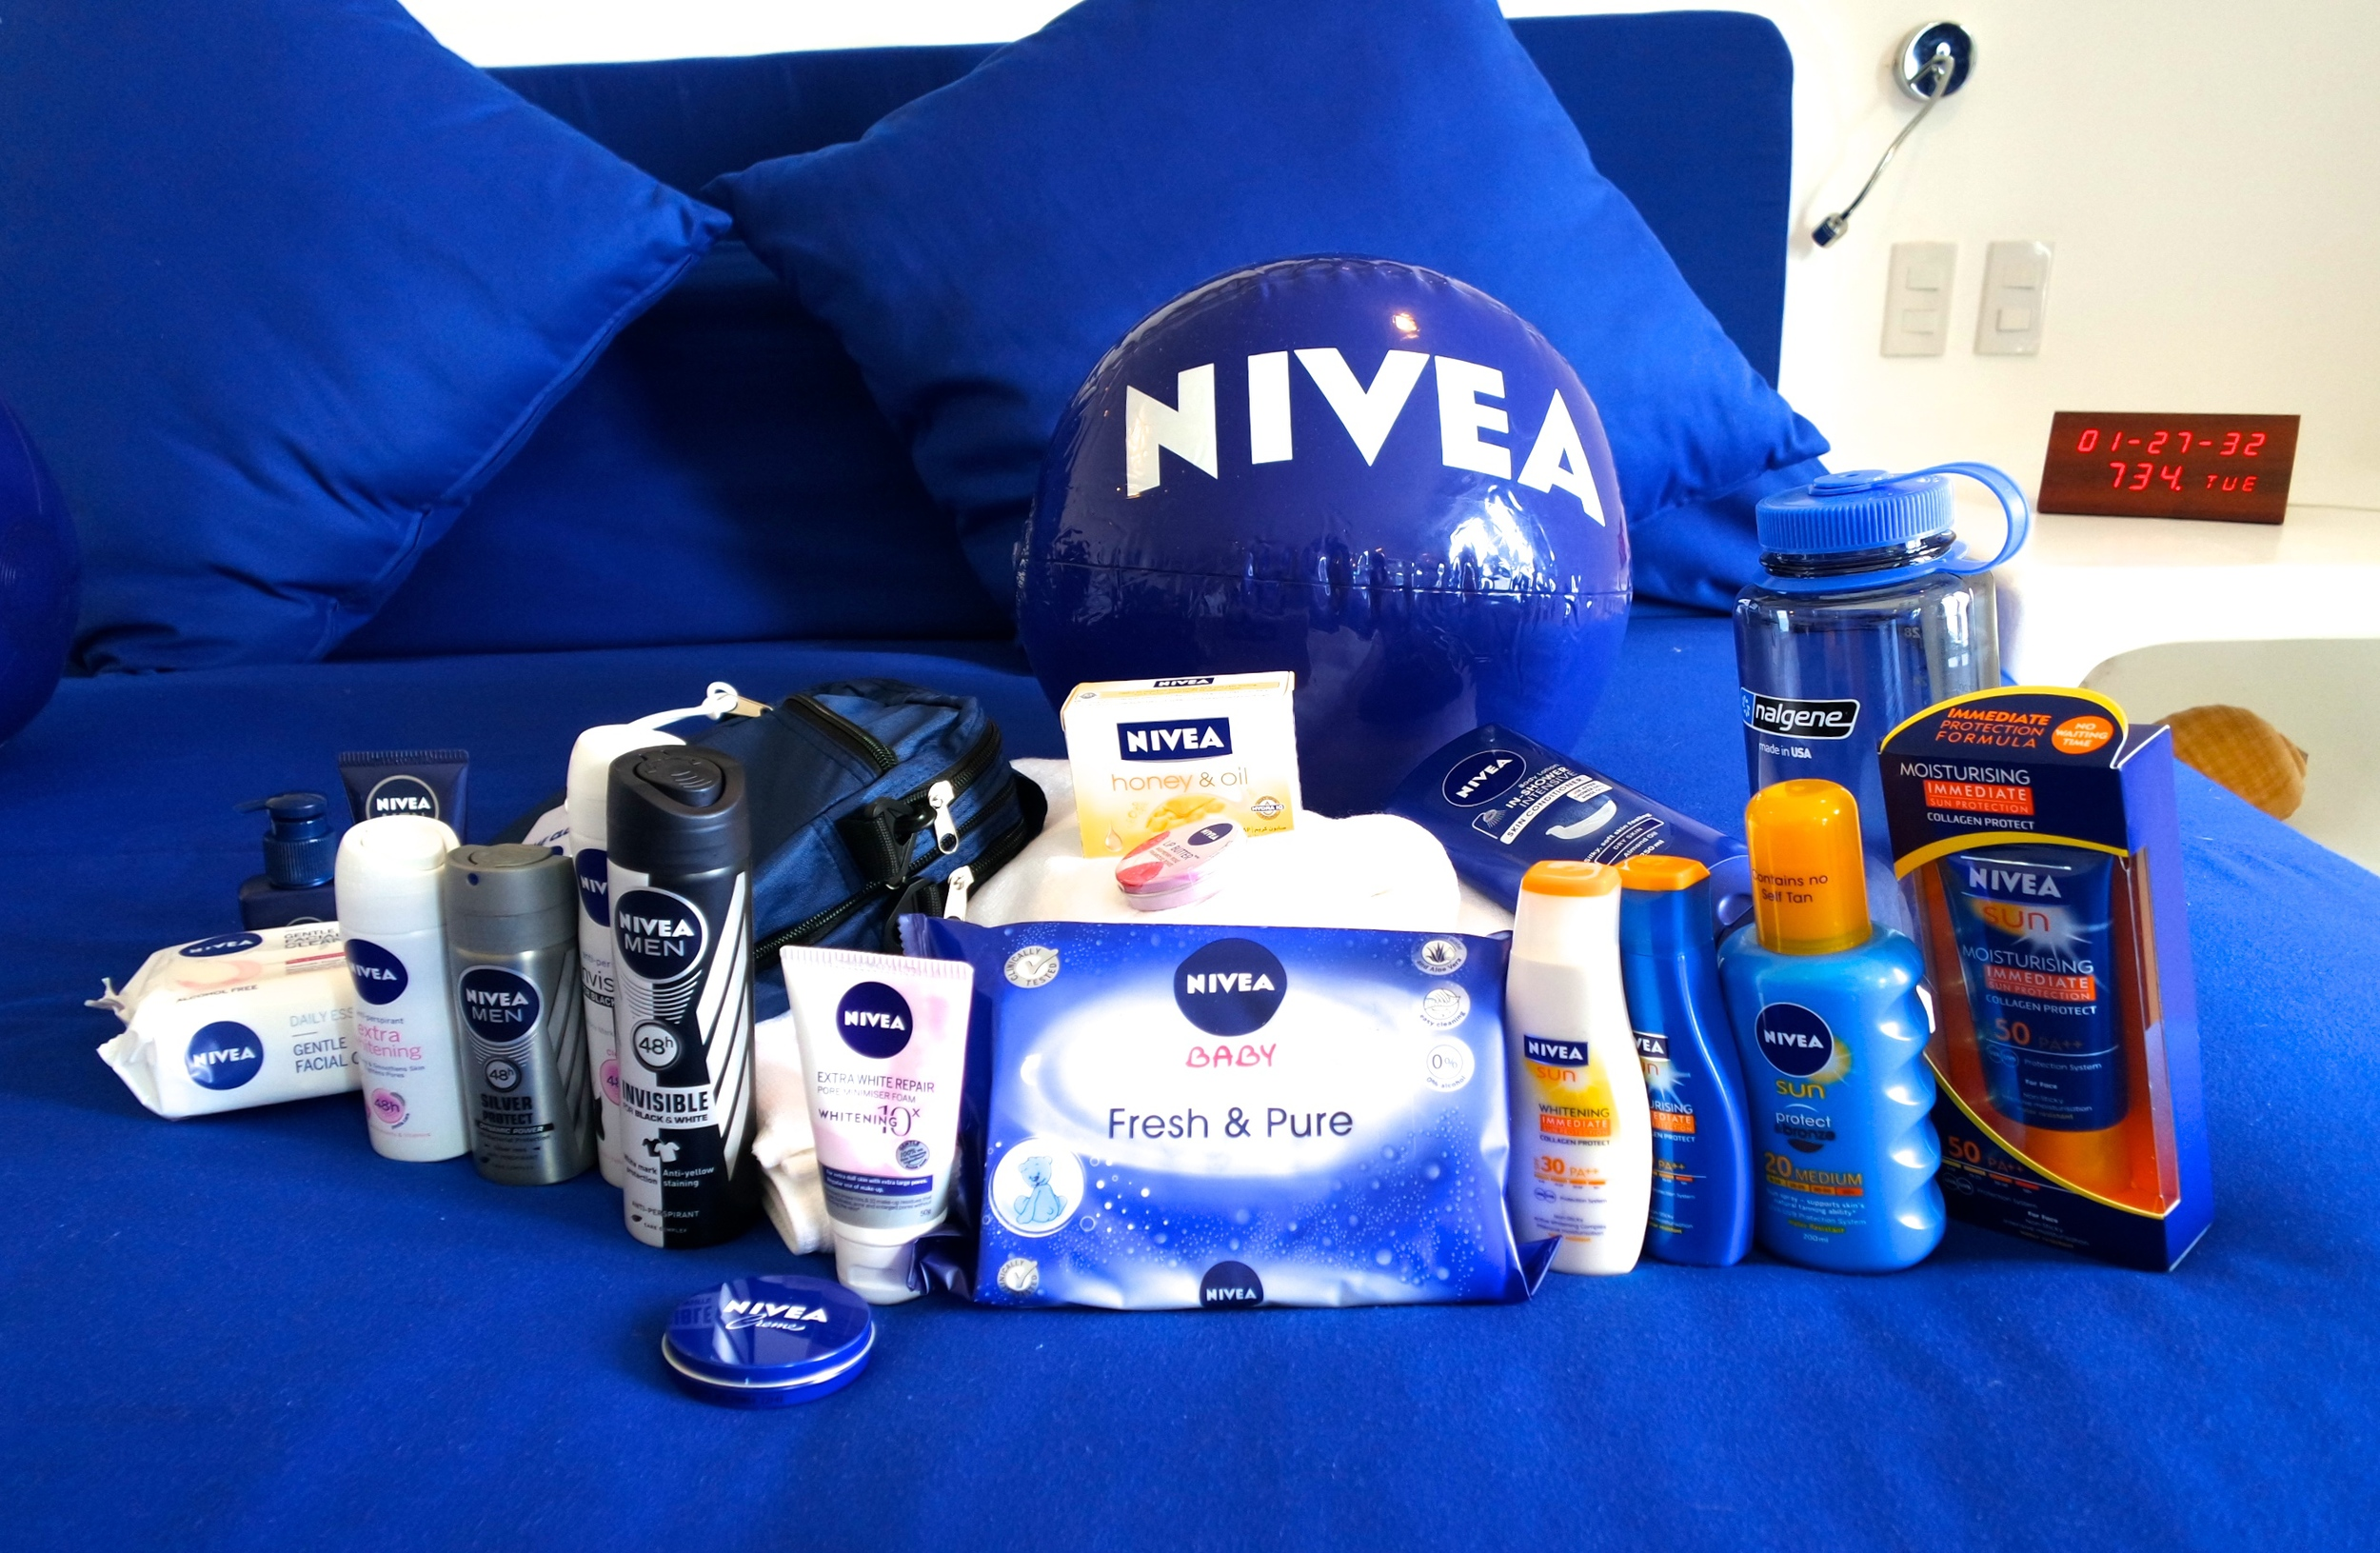 Of course, Nivea has got us covered for our skincare needs. Spot my faves!